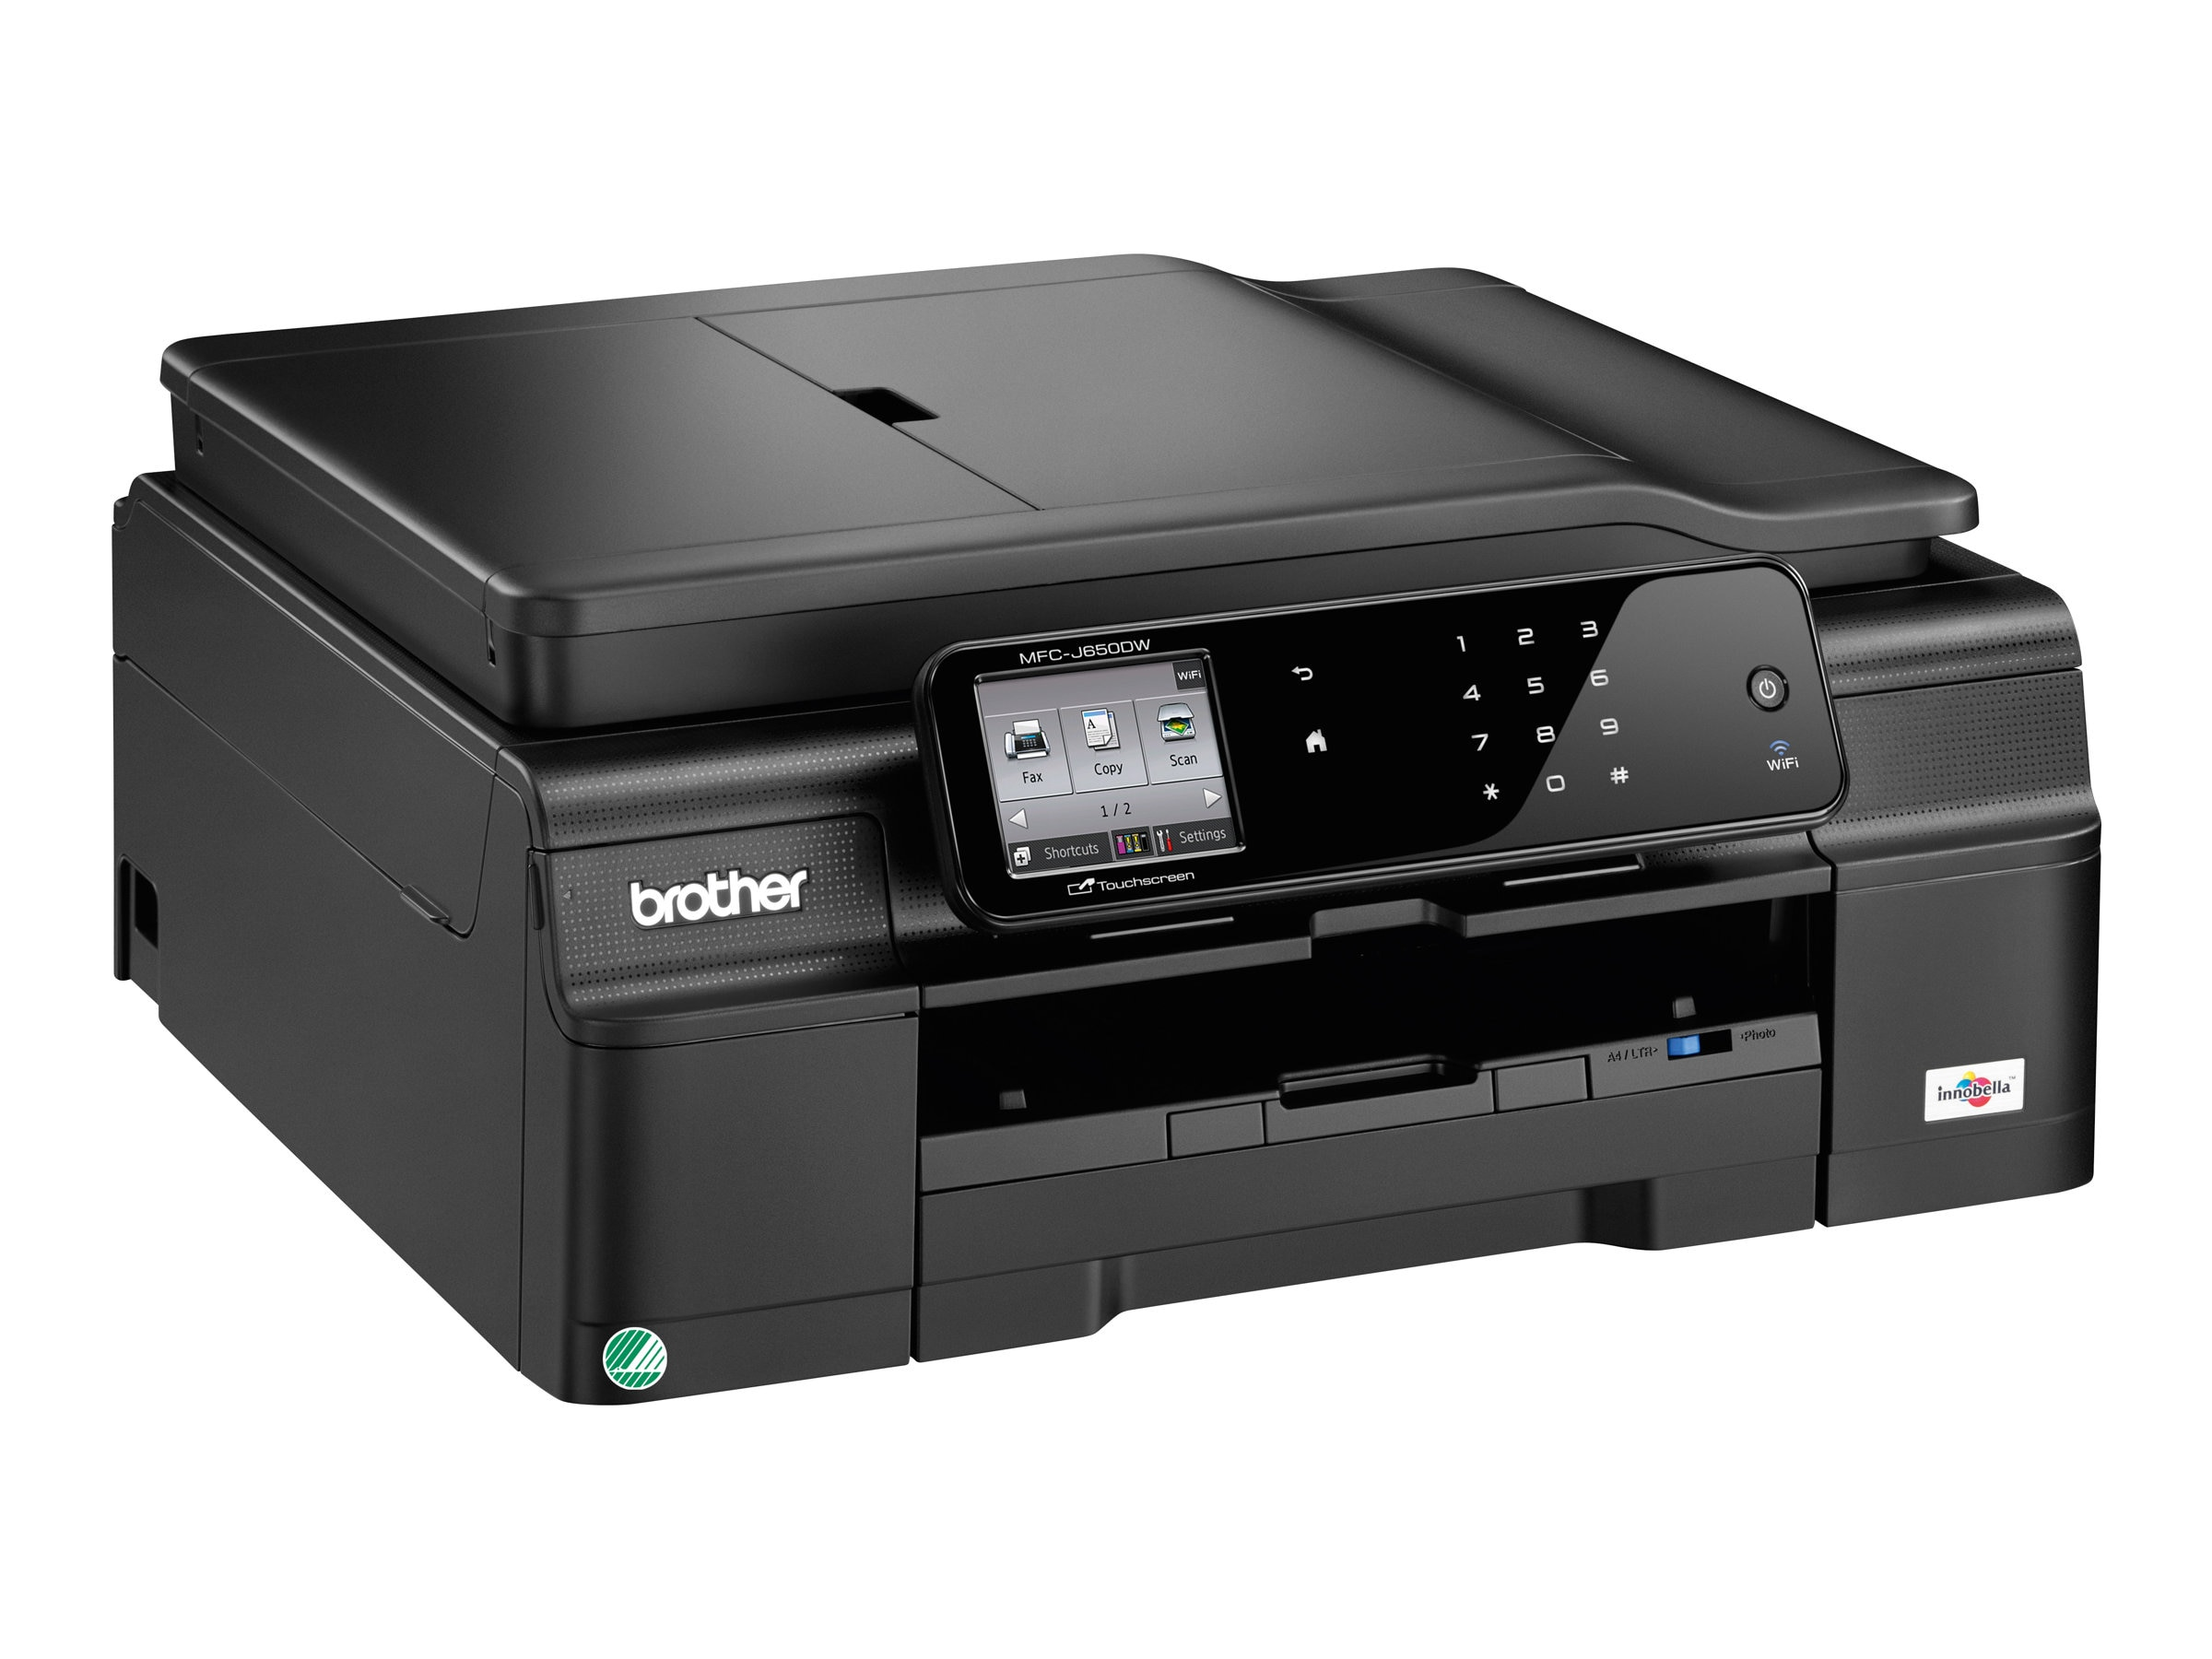 Brother MFC-J650DW Image 6